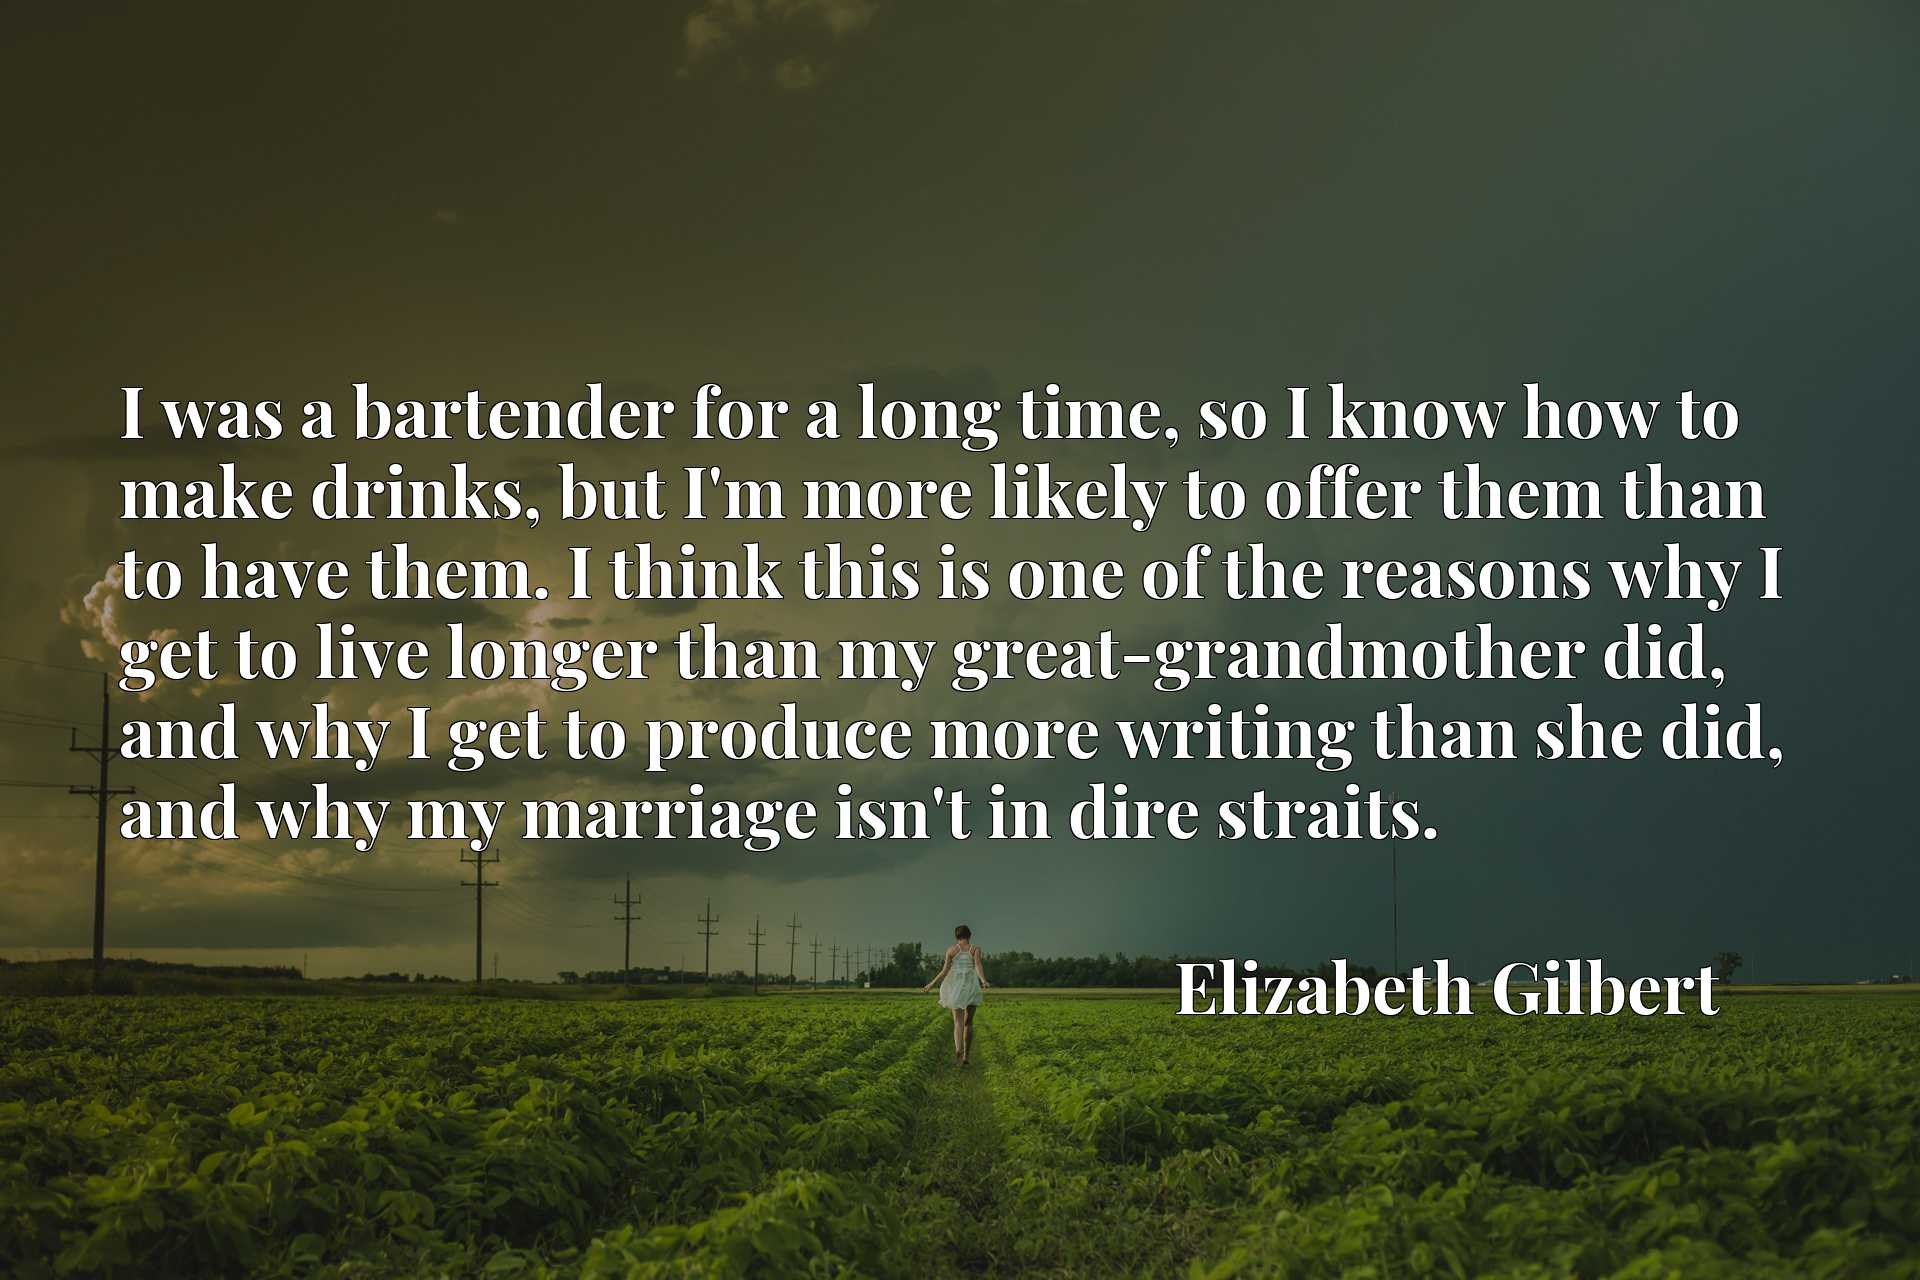 I was a bartender for a long time, so I know how to make drinks, but I'm more likely to offer them than to have them. I think this is one of the reasons why I get to live longer than my great-grandmother did, and why I get to produce more writing than she did, and why my marriage isn't in dire straits.